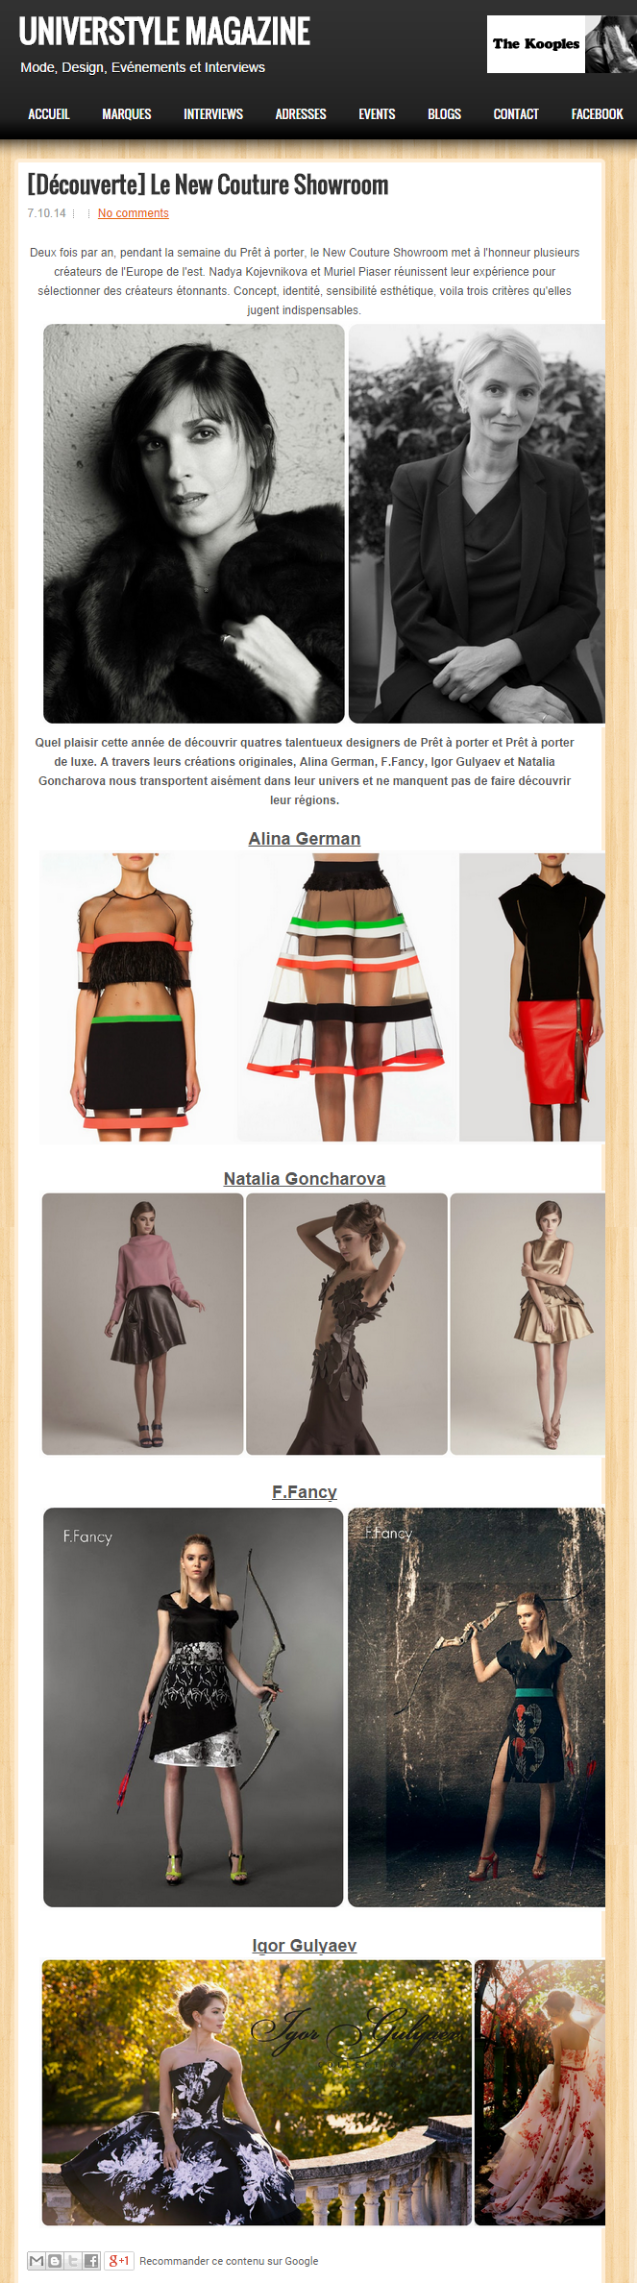 New Couture Showroom  @ UNIVERSTYLE MAGAZINE.png